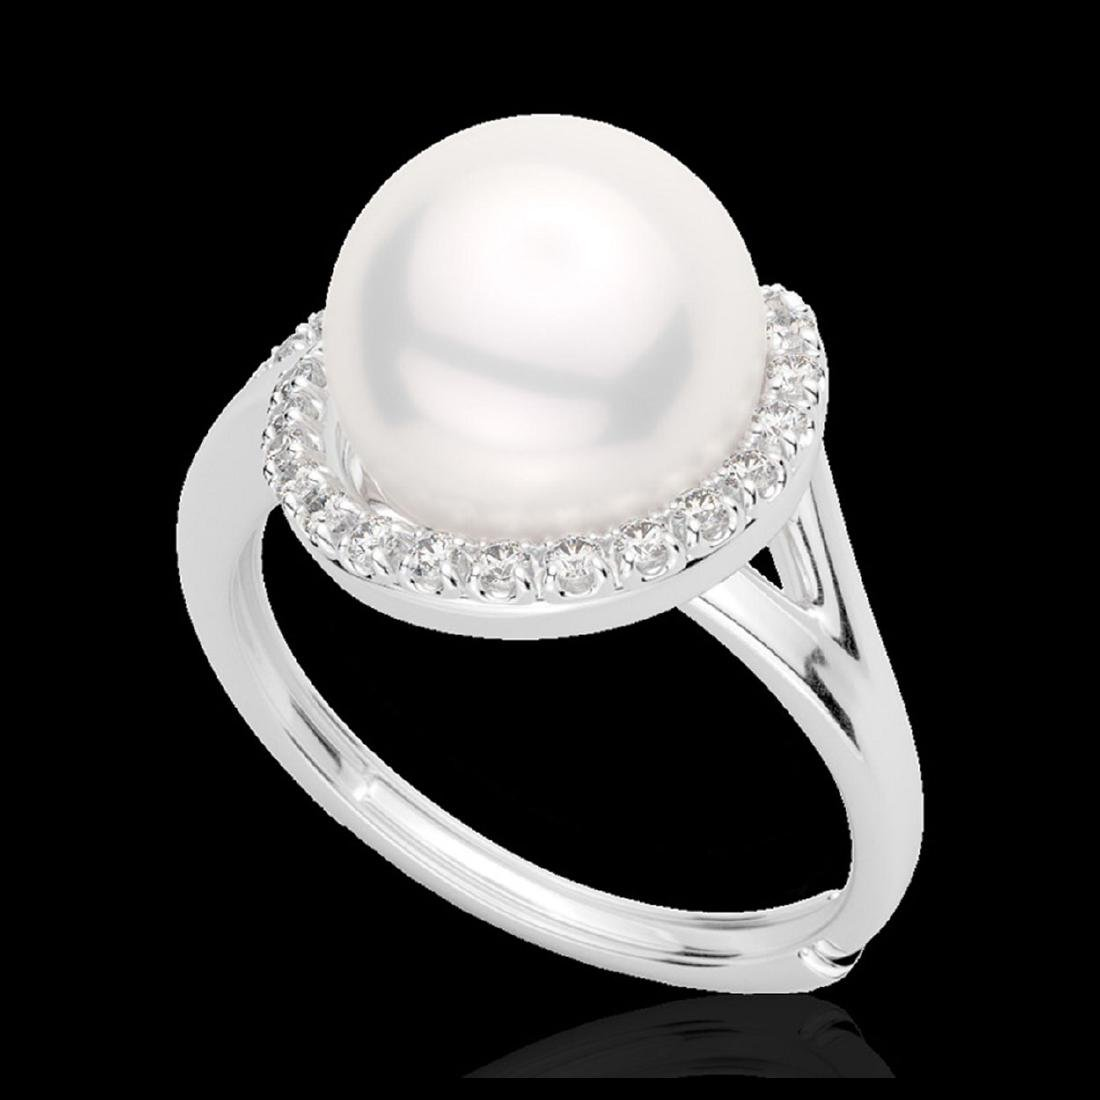 0.27 ctw VS/SI Diamond & White Pearl Ring 18K White - 2